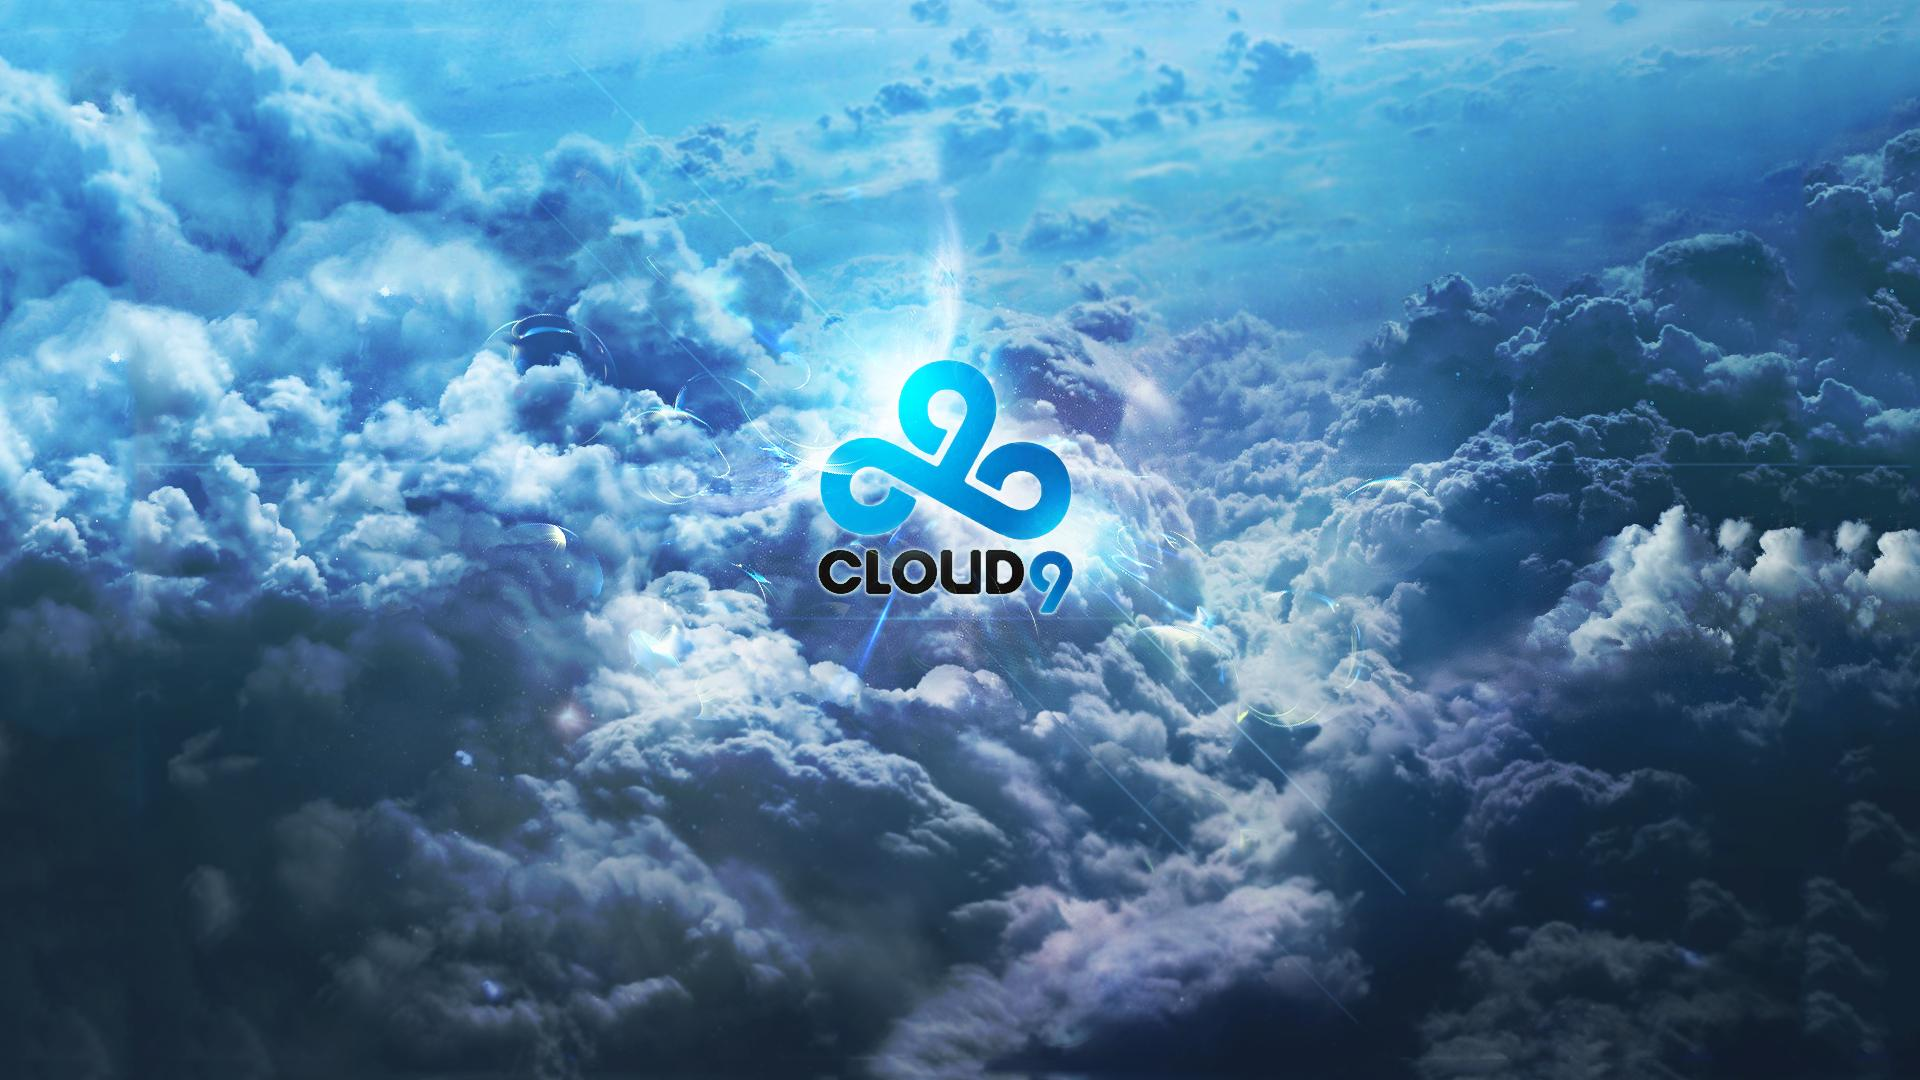 1920x1080 Cloud 9 : wallpapers